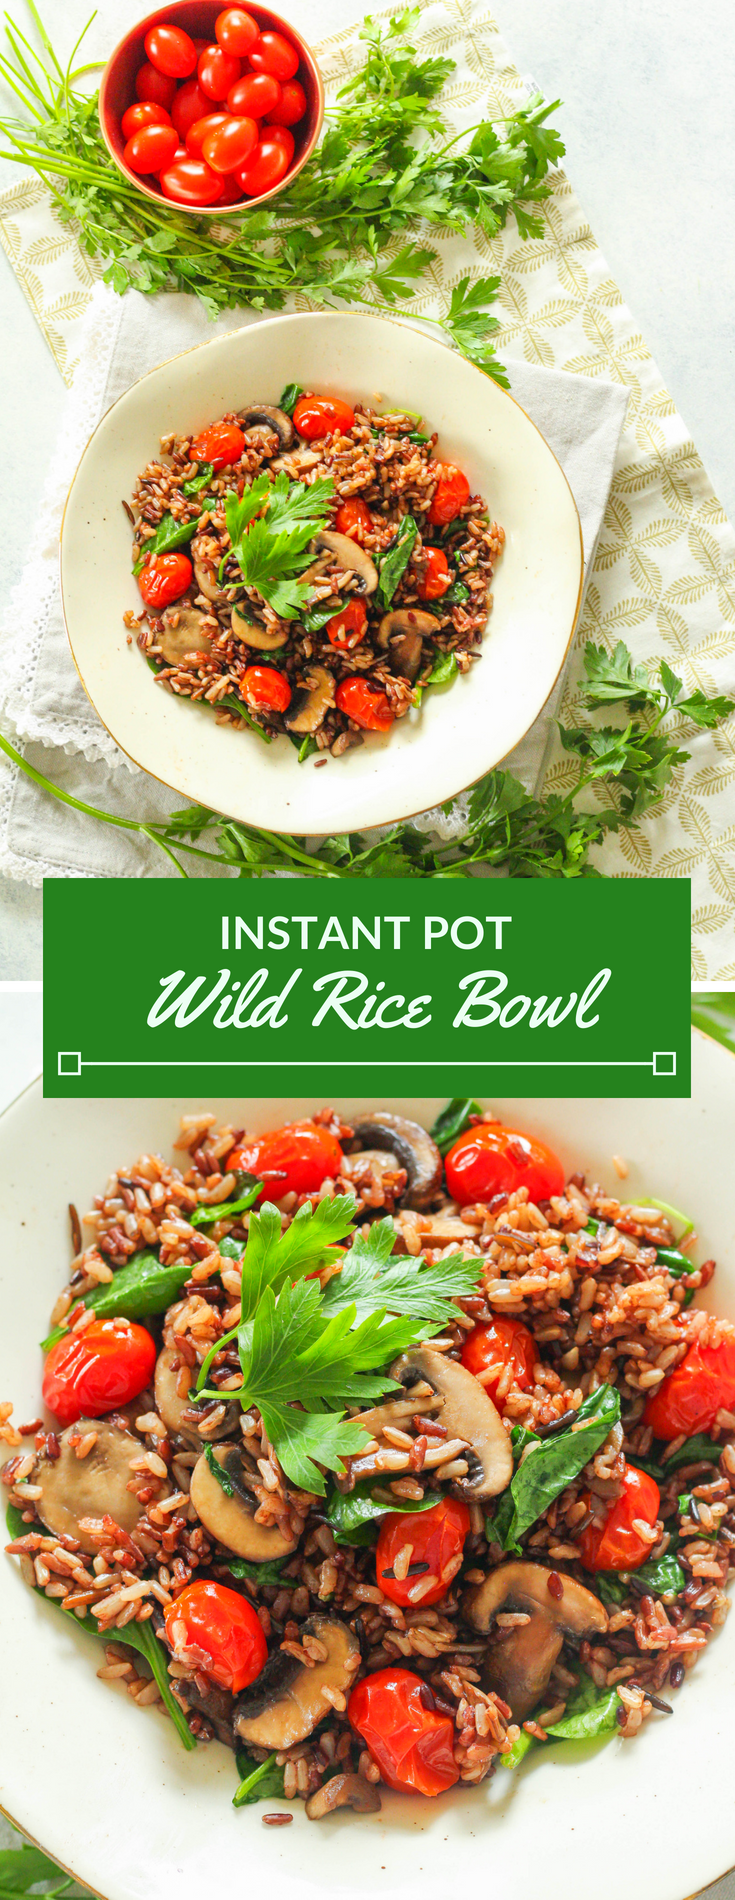 Delicious and filling, this Instant Pot Wild Rice Bowl is a comforting weeknight meal that won't heat up your kitchen in the summer months. Full of warm-weather flavors like baby spinach, burst sweet cherry tomatoes, and the addition of umami flavor from mushrooms.